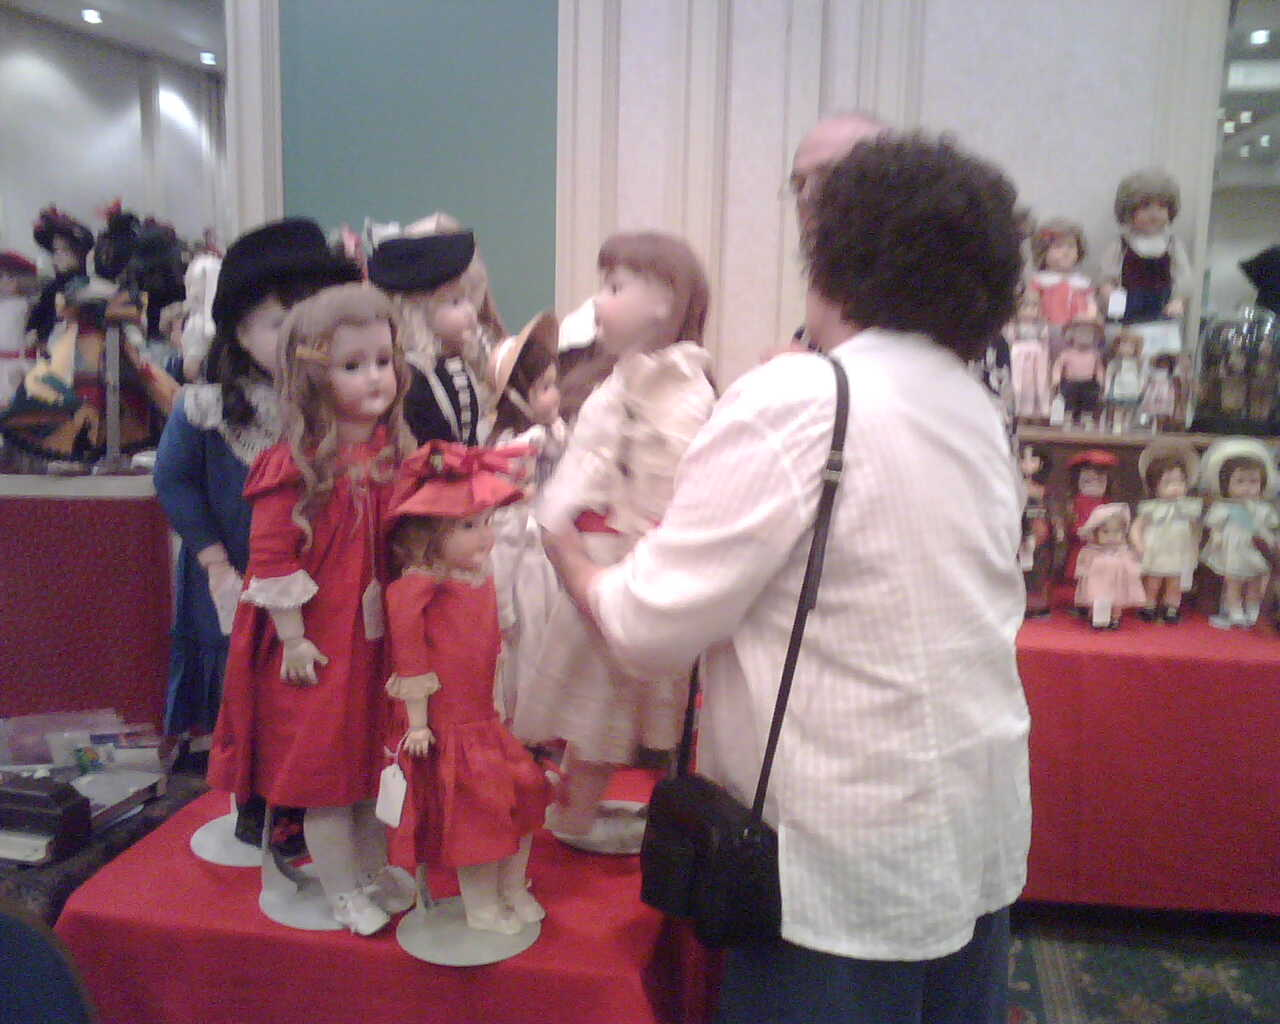 while everyone was getting coffee, i visited a doll show in the banquet room of our hotel